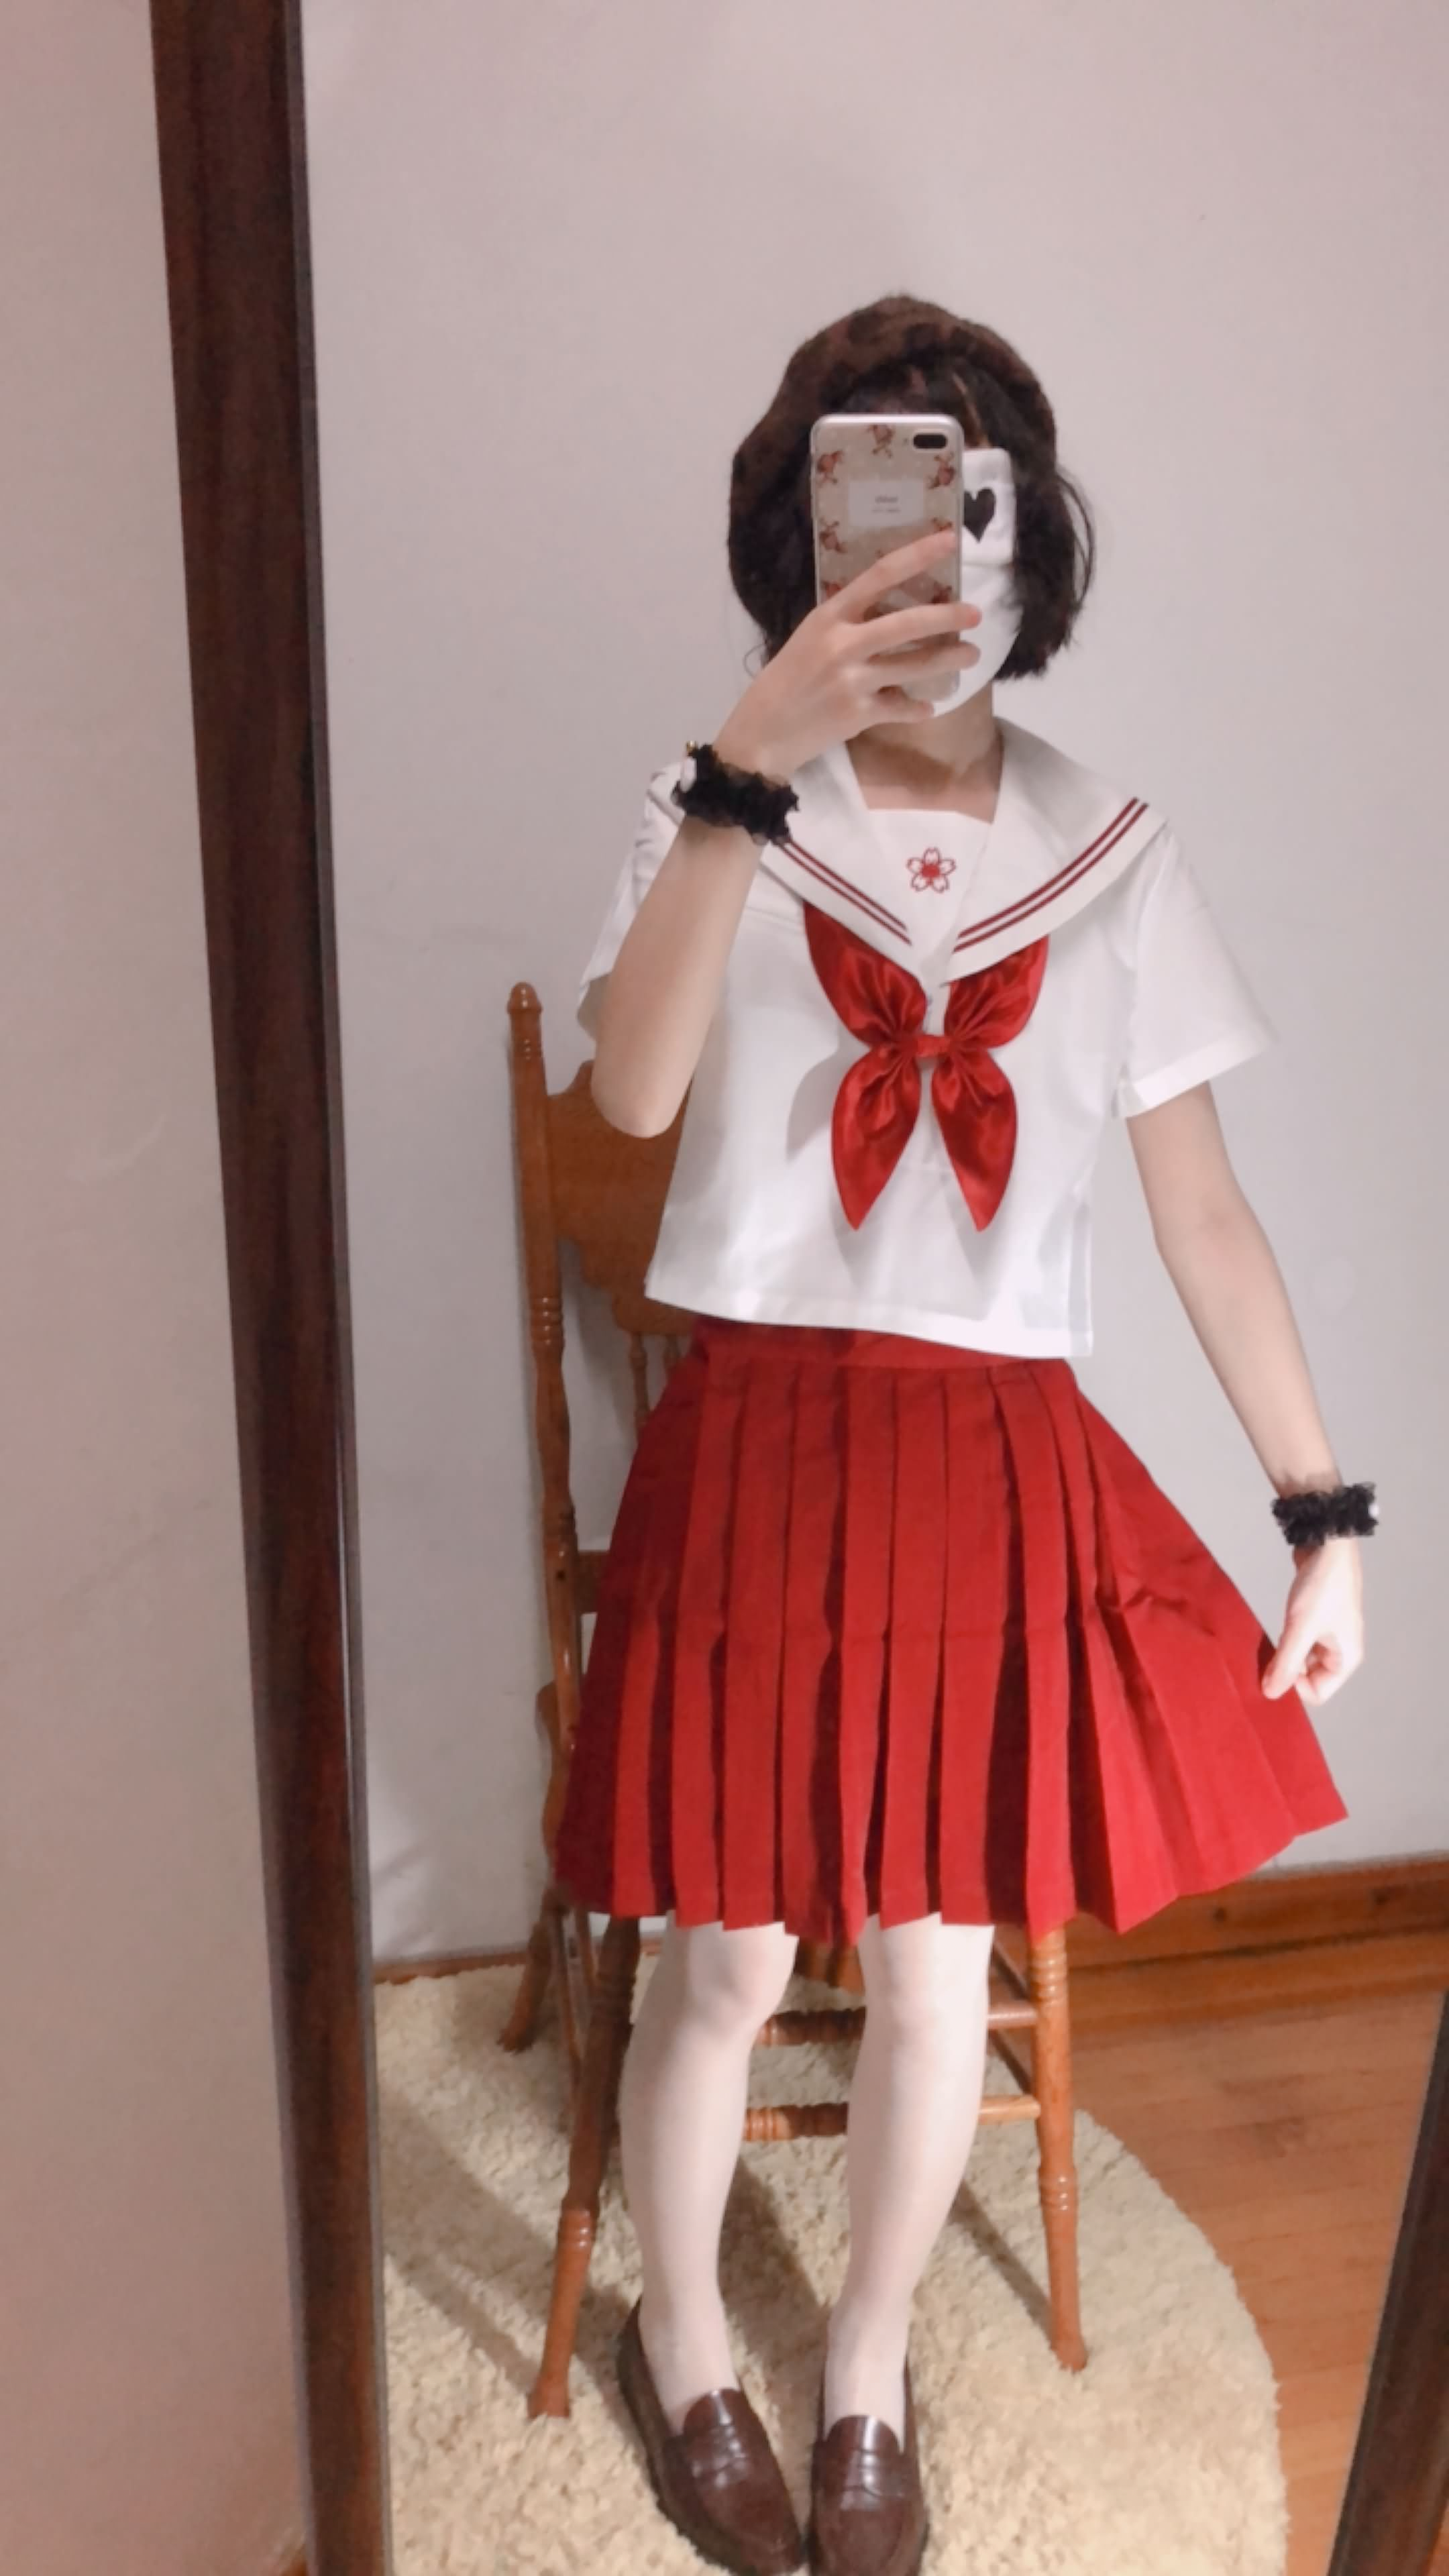 02 - Cosplay red JK uniform white stockings sweet pussy butt 小结巴-红色jk制服白丝 95P